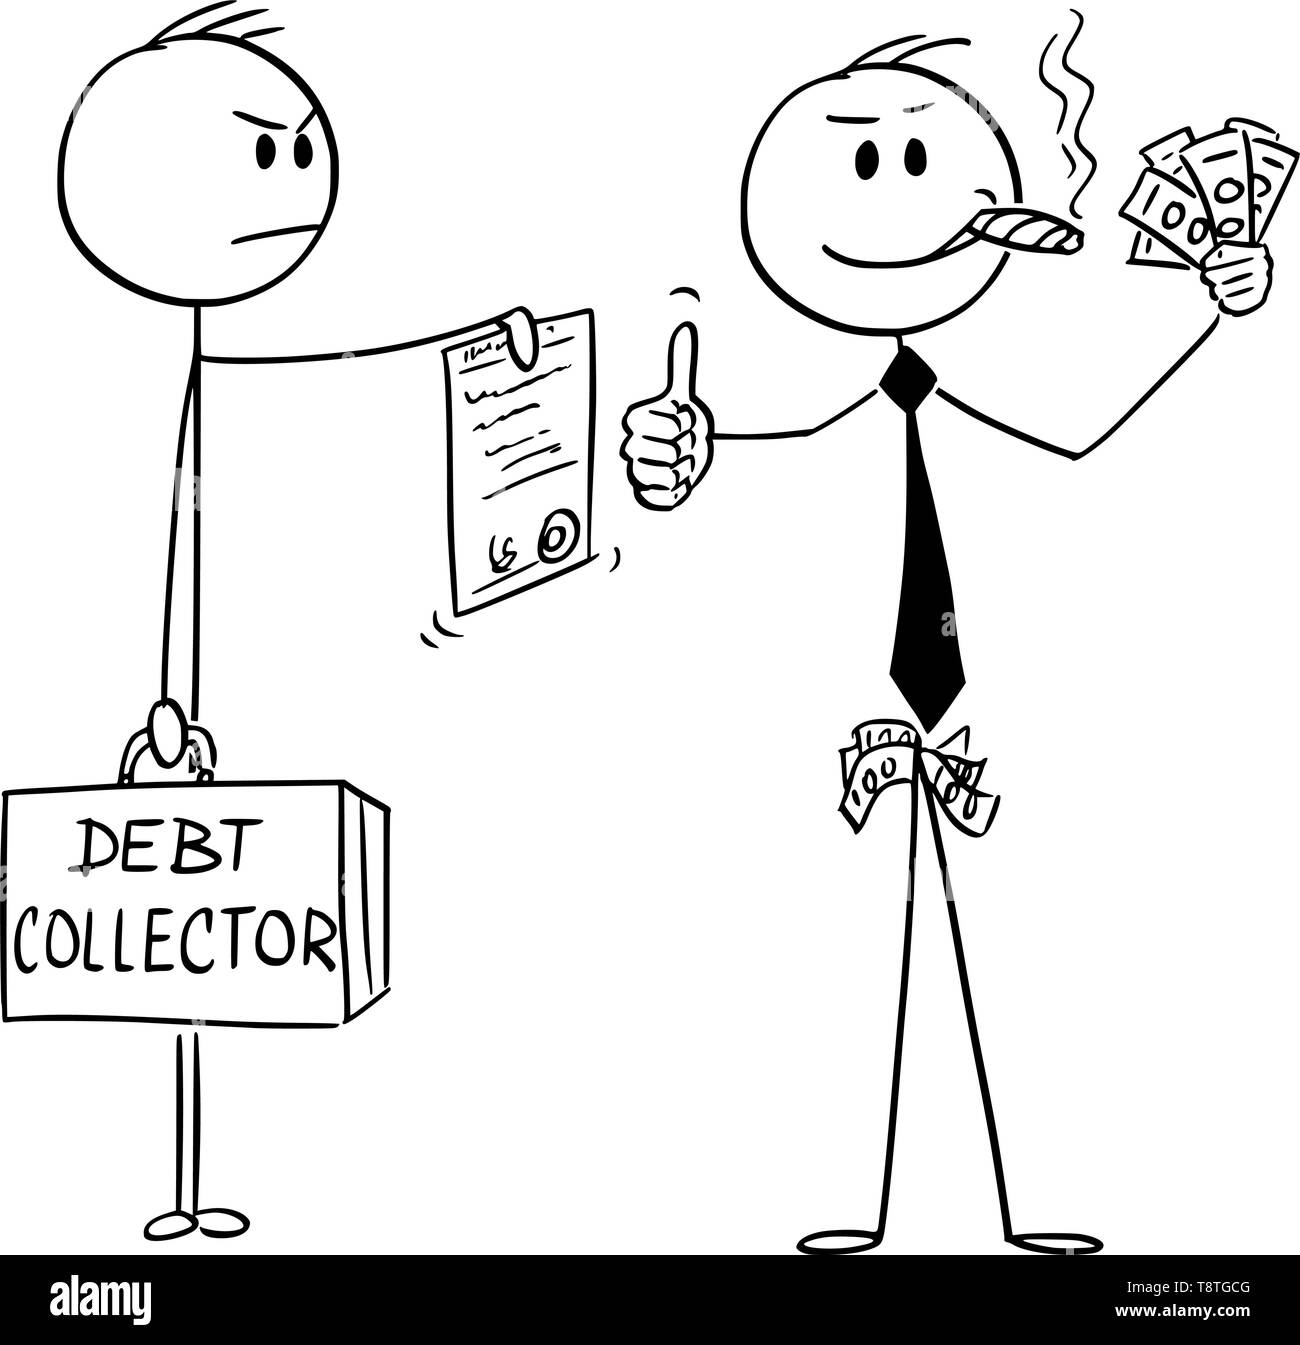 Vector cartoon stick figure drawing conceptual illustration of confident successful man or businessman smoking cigar, with money in hand showing thumbs-up while debt collector is ordering him to pay debts or foreclosing his property. - Stock Image